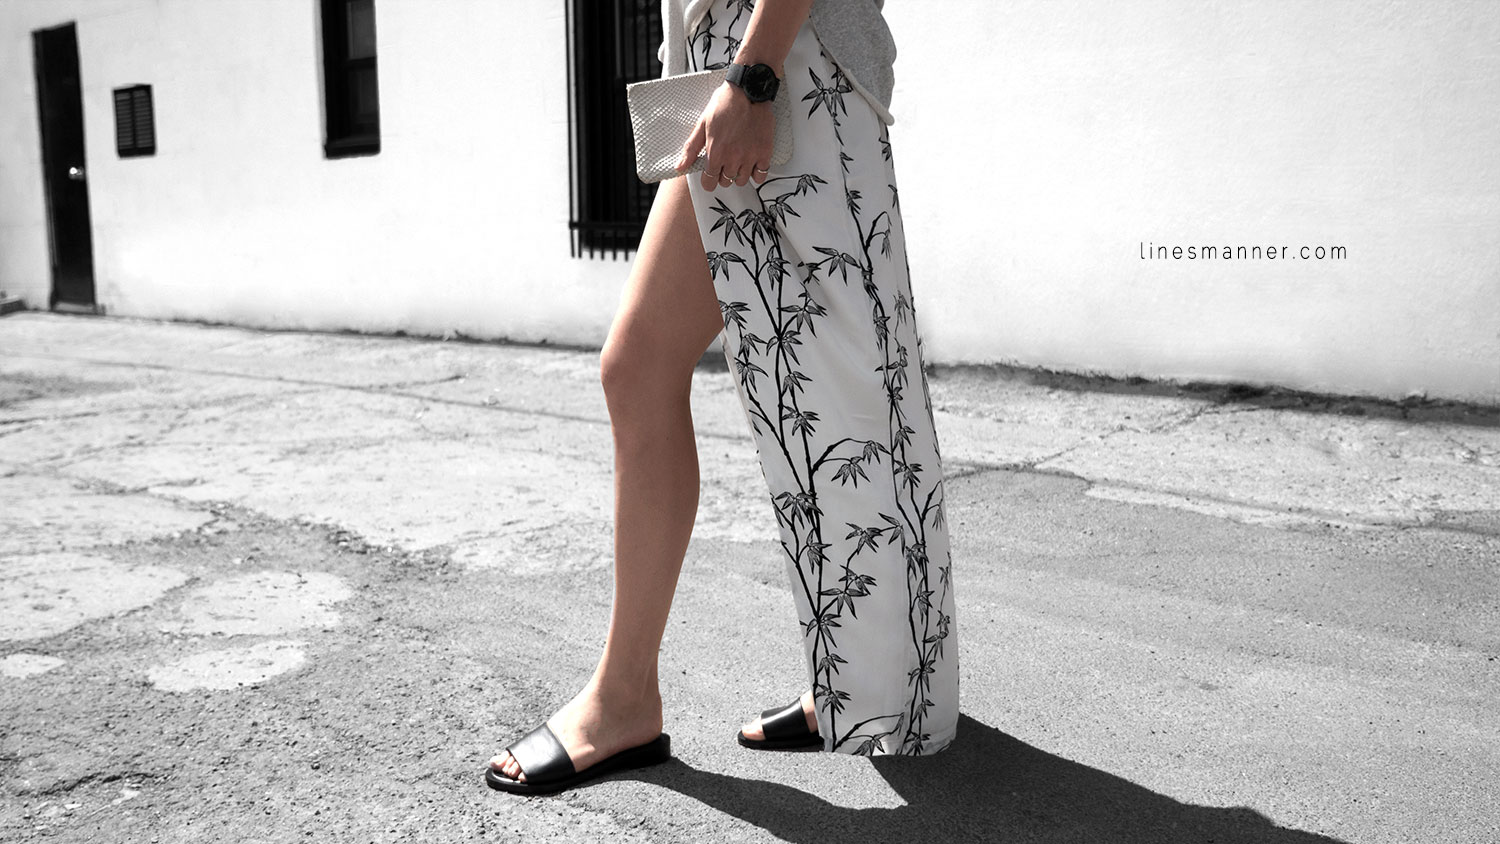 Lines-Manner-Minimal-Simplicity-Essentials-Bon_Label-Neon_Rose_Print-Bamboo-Slit_Dress-Wrap_Dress-Maxi_Dress-Fesh-Black_and_White-Casual-Elegant-Bright-Monochrome-1